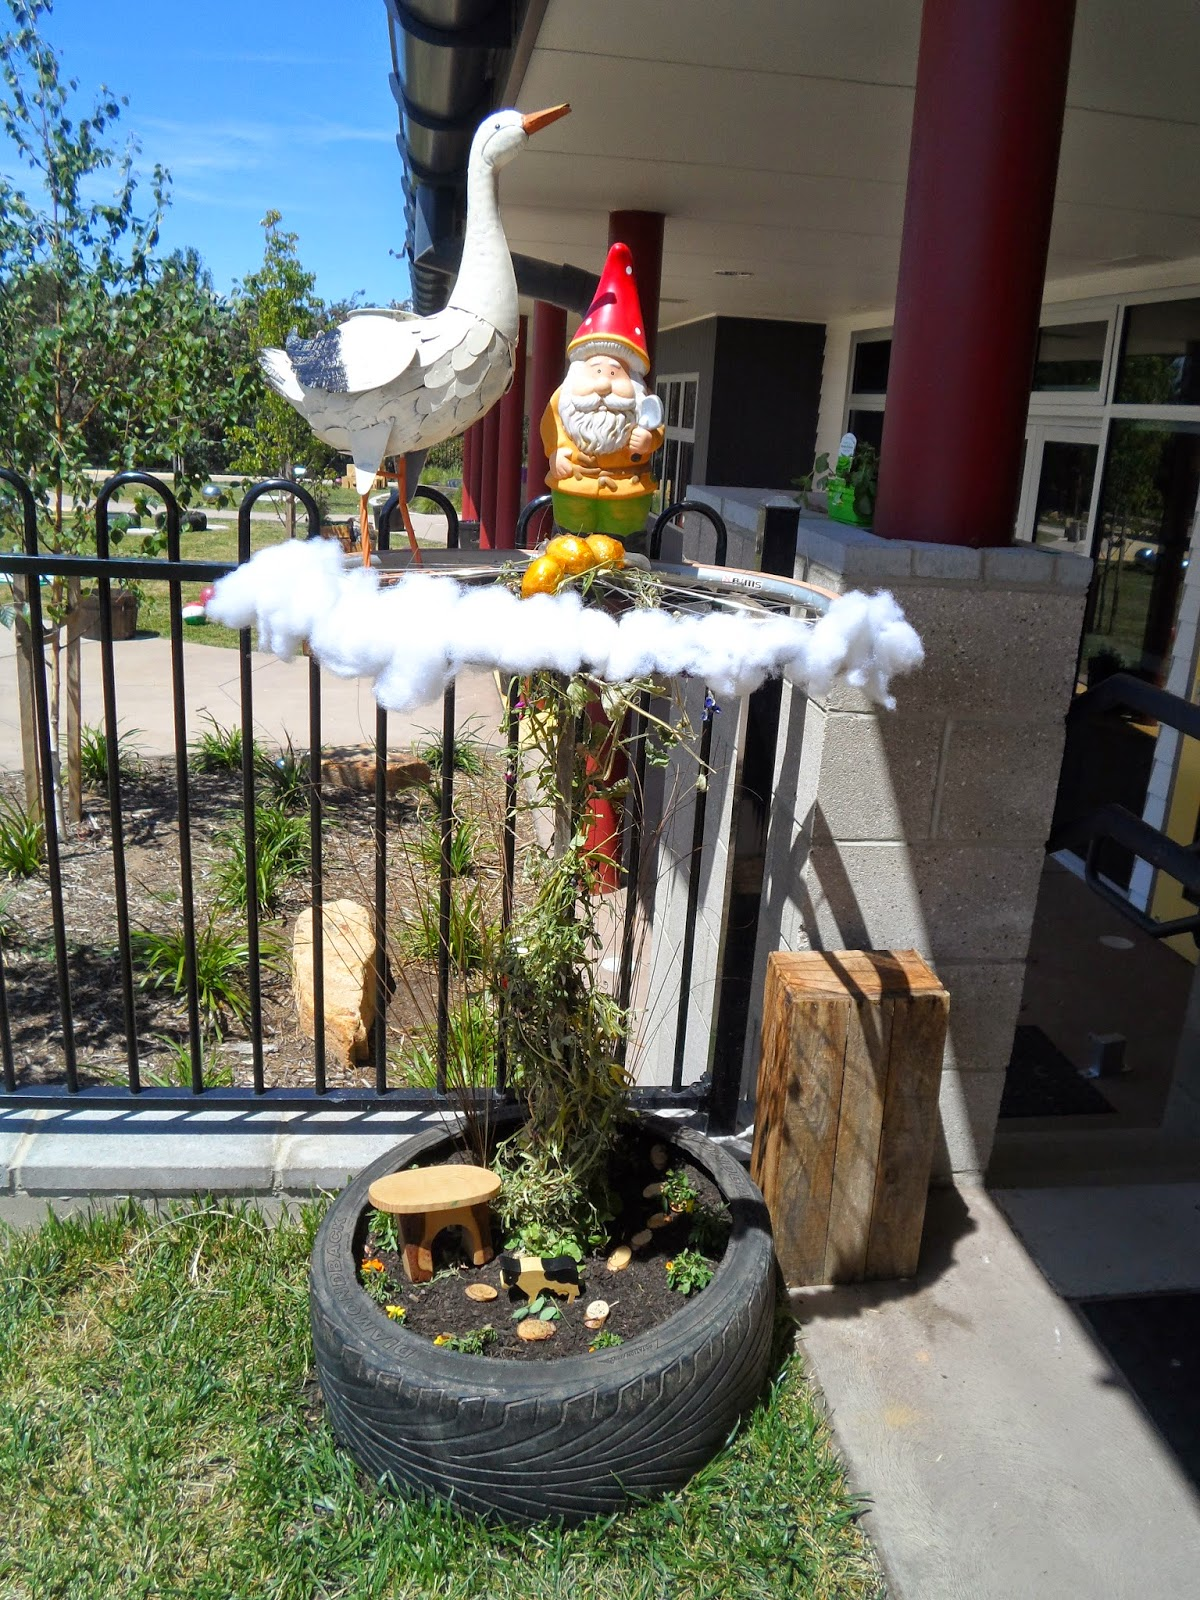 Act Storybook Garden Competition